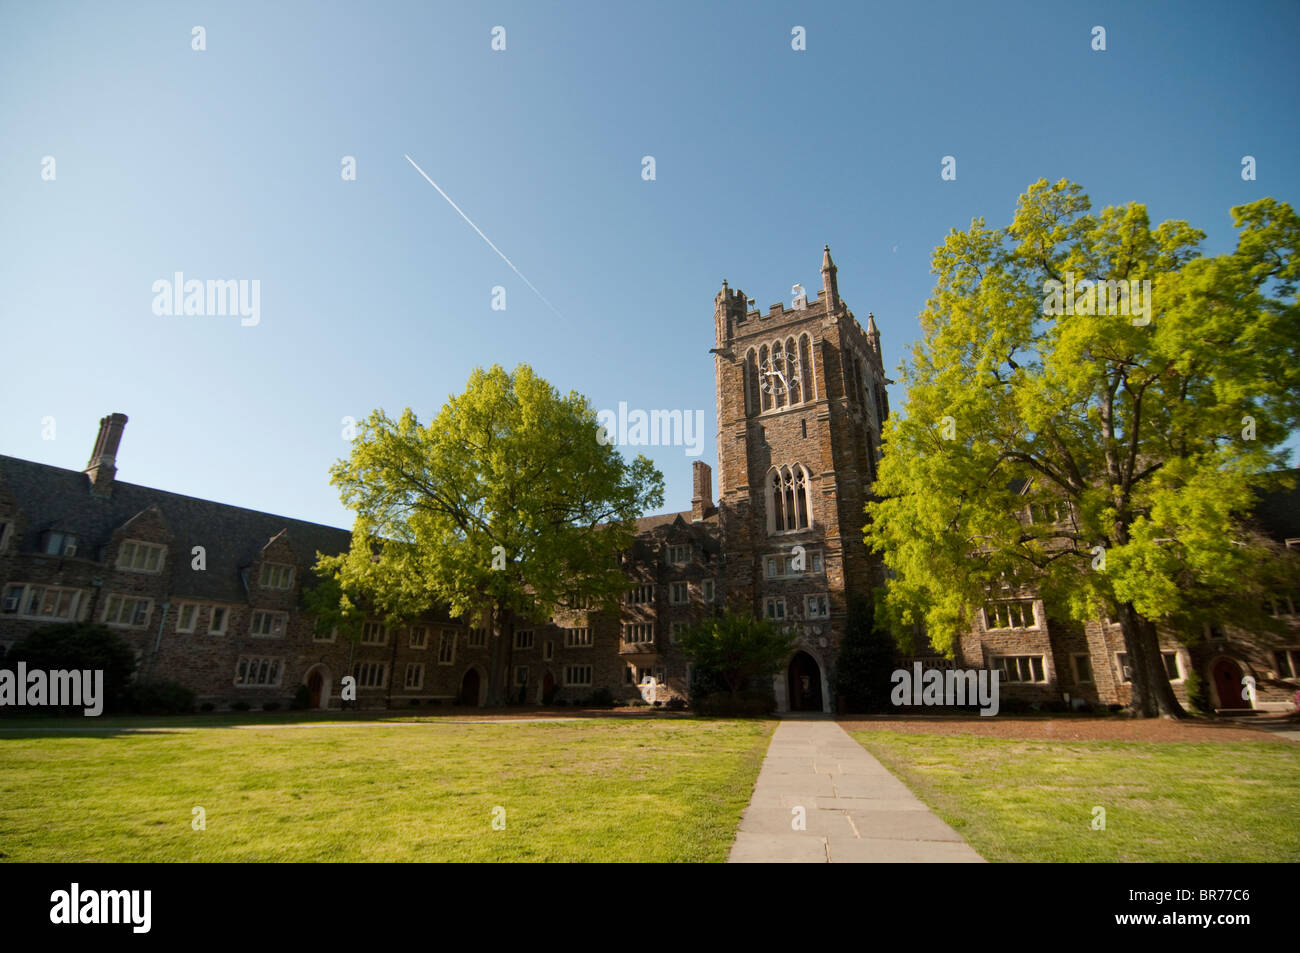 Clocktower Quad on Duke University's West Campus in Durham, North Carolina, USA. - Stock Image